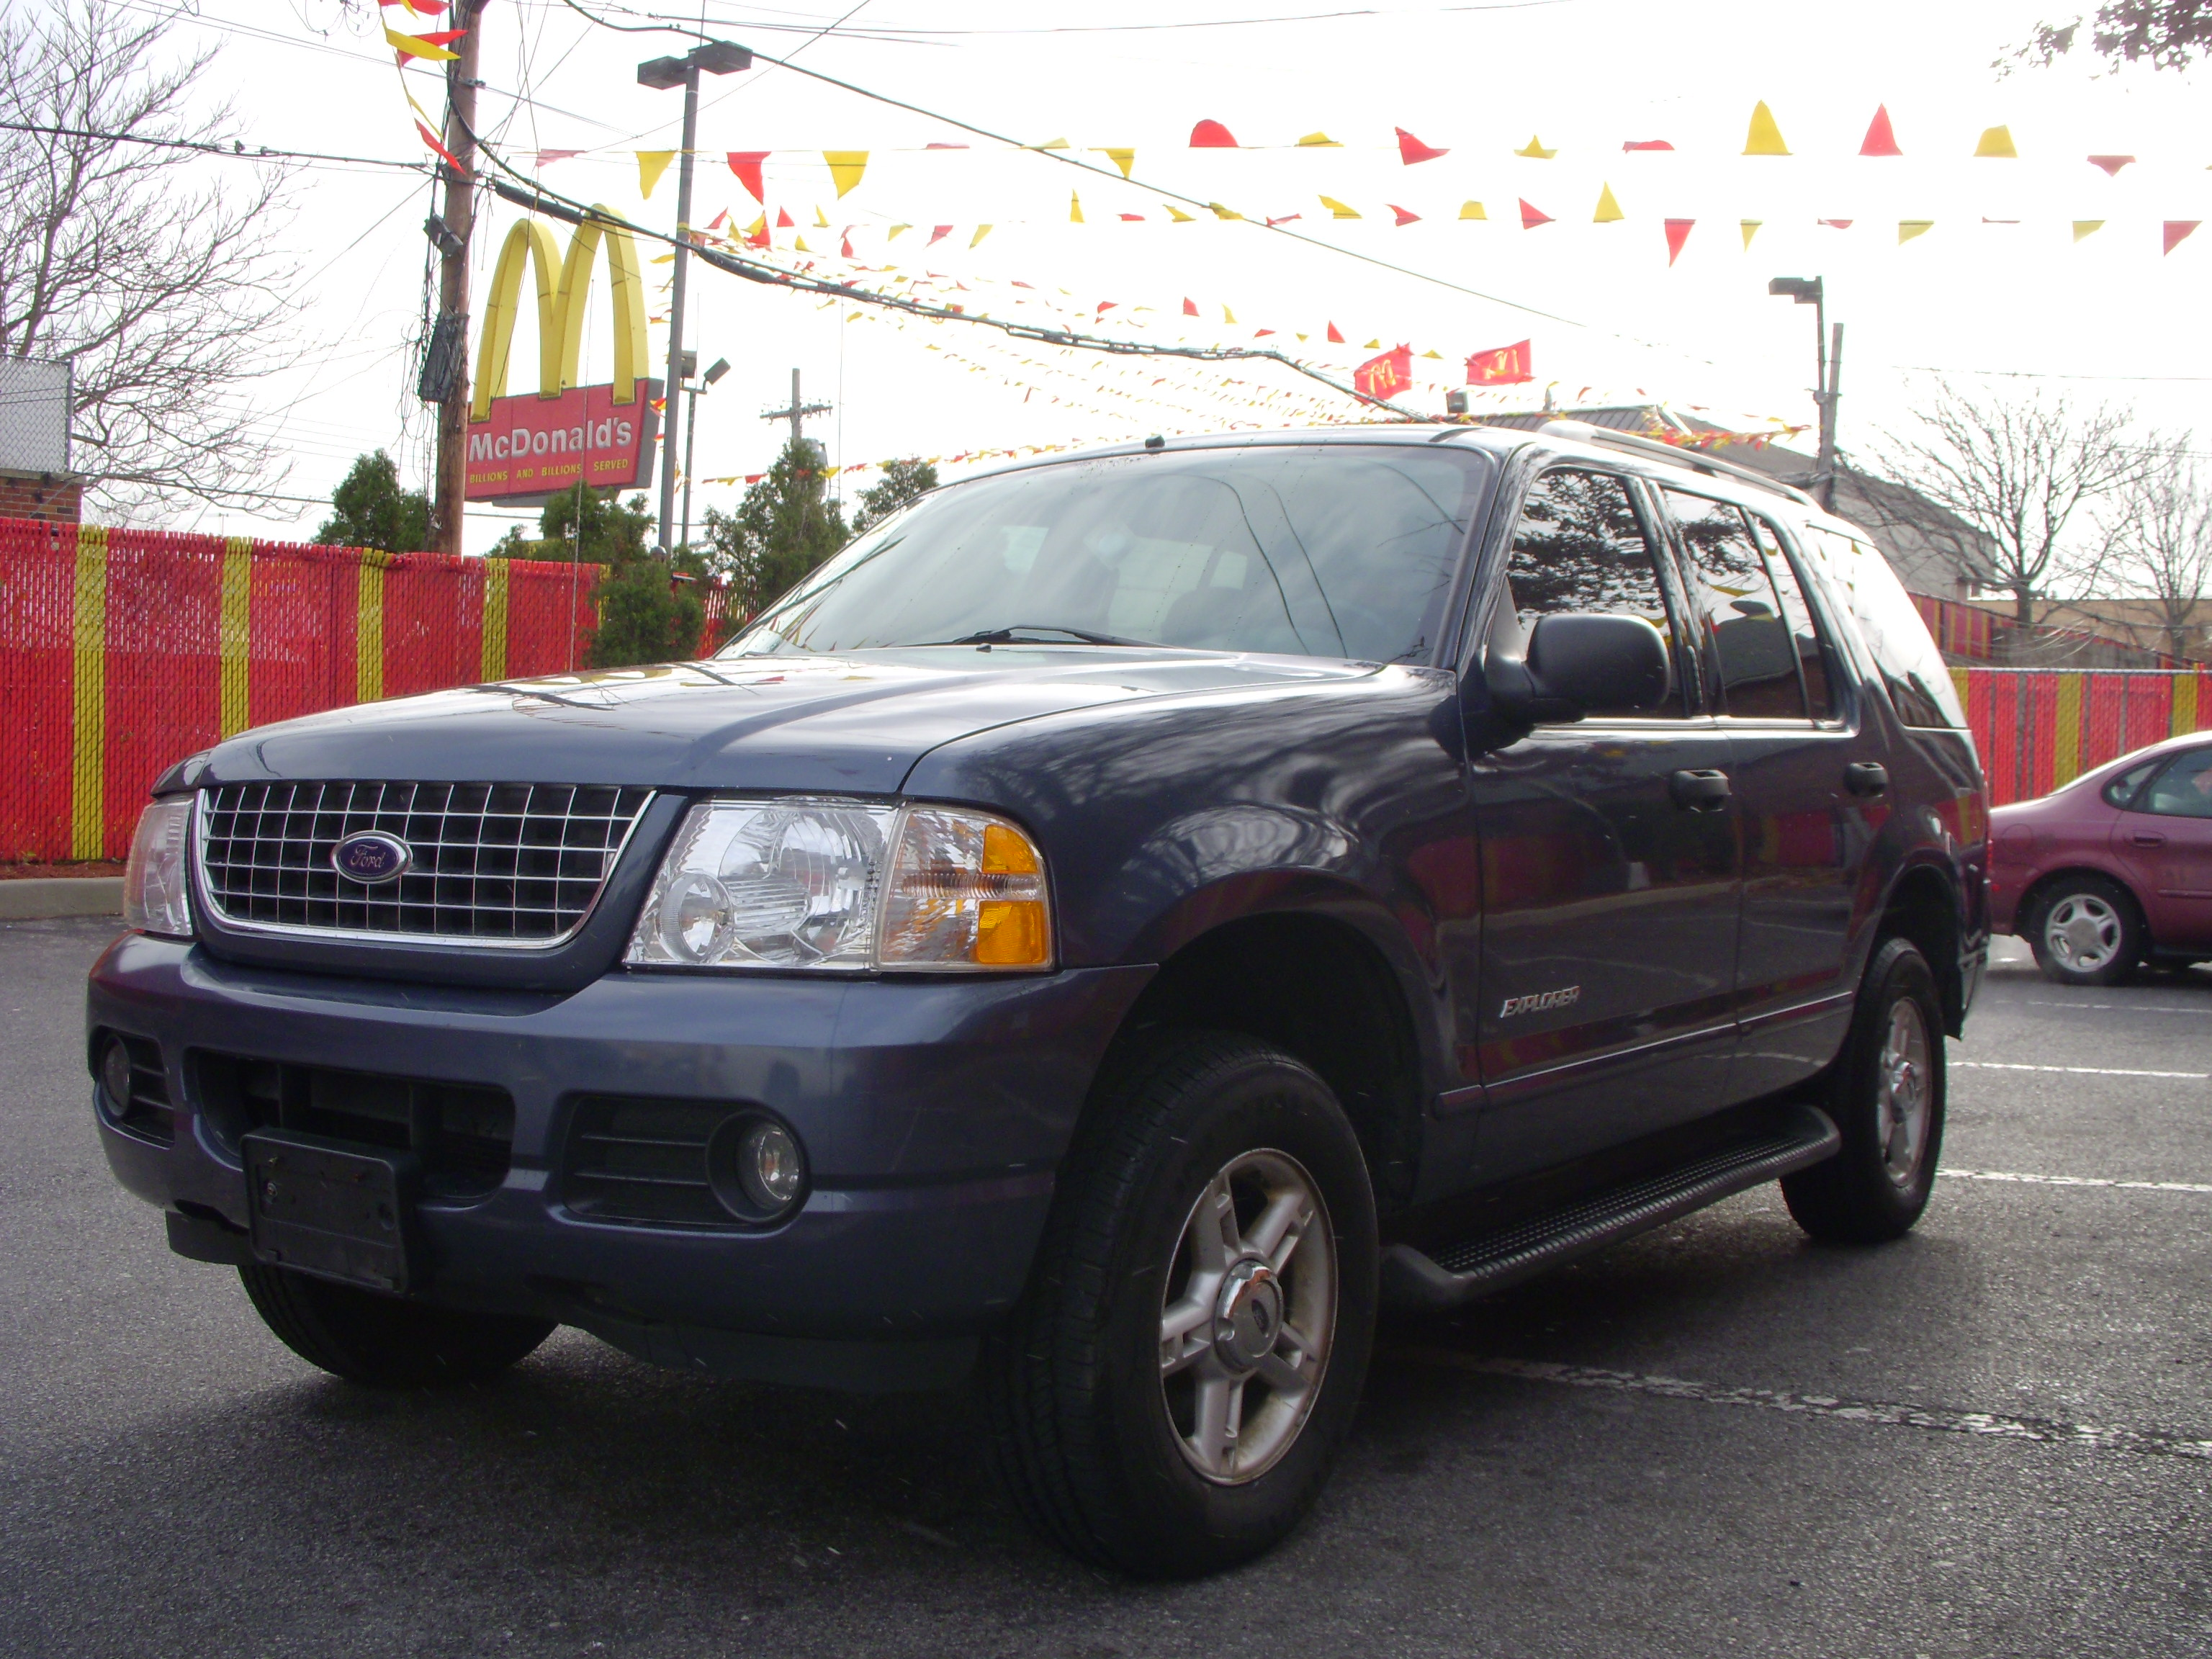 Used - Ford Explorer XLT Sport Utility for sale in Staten Island NY & Used 2004 Ford Explorer XLT Sport Utility $7690.00 markmcfarlin.com